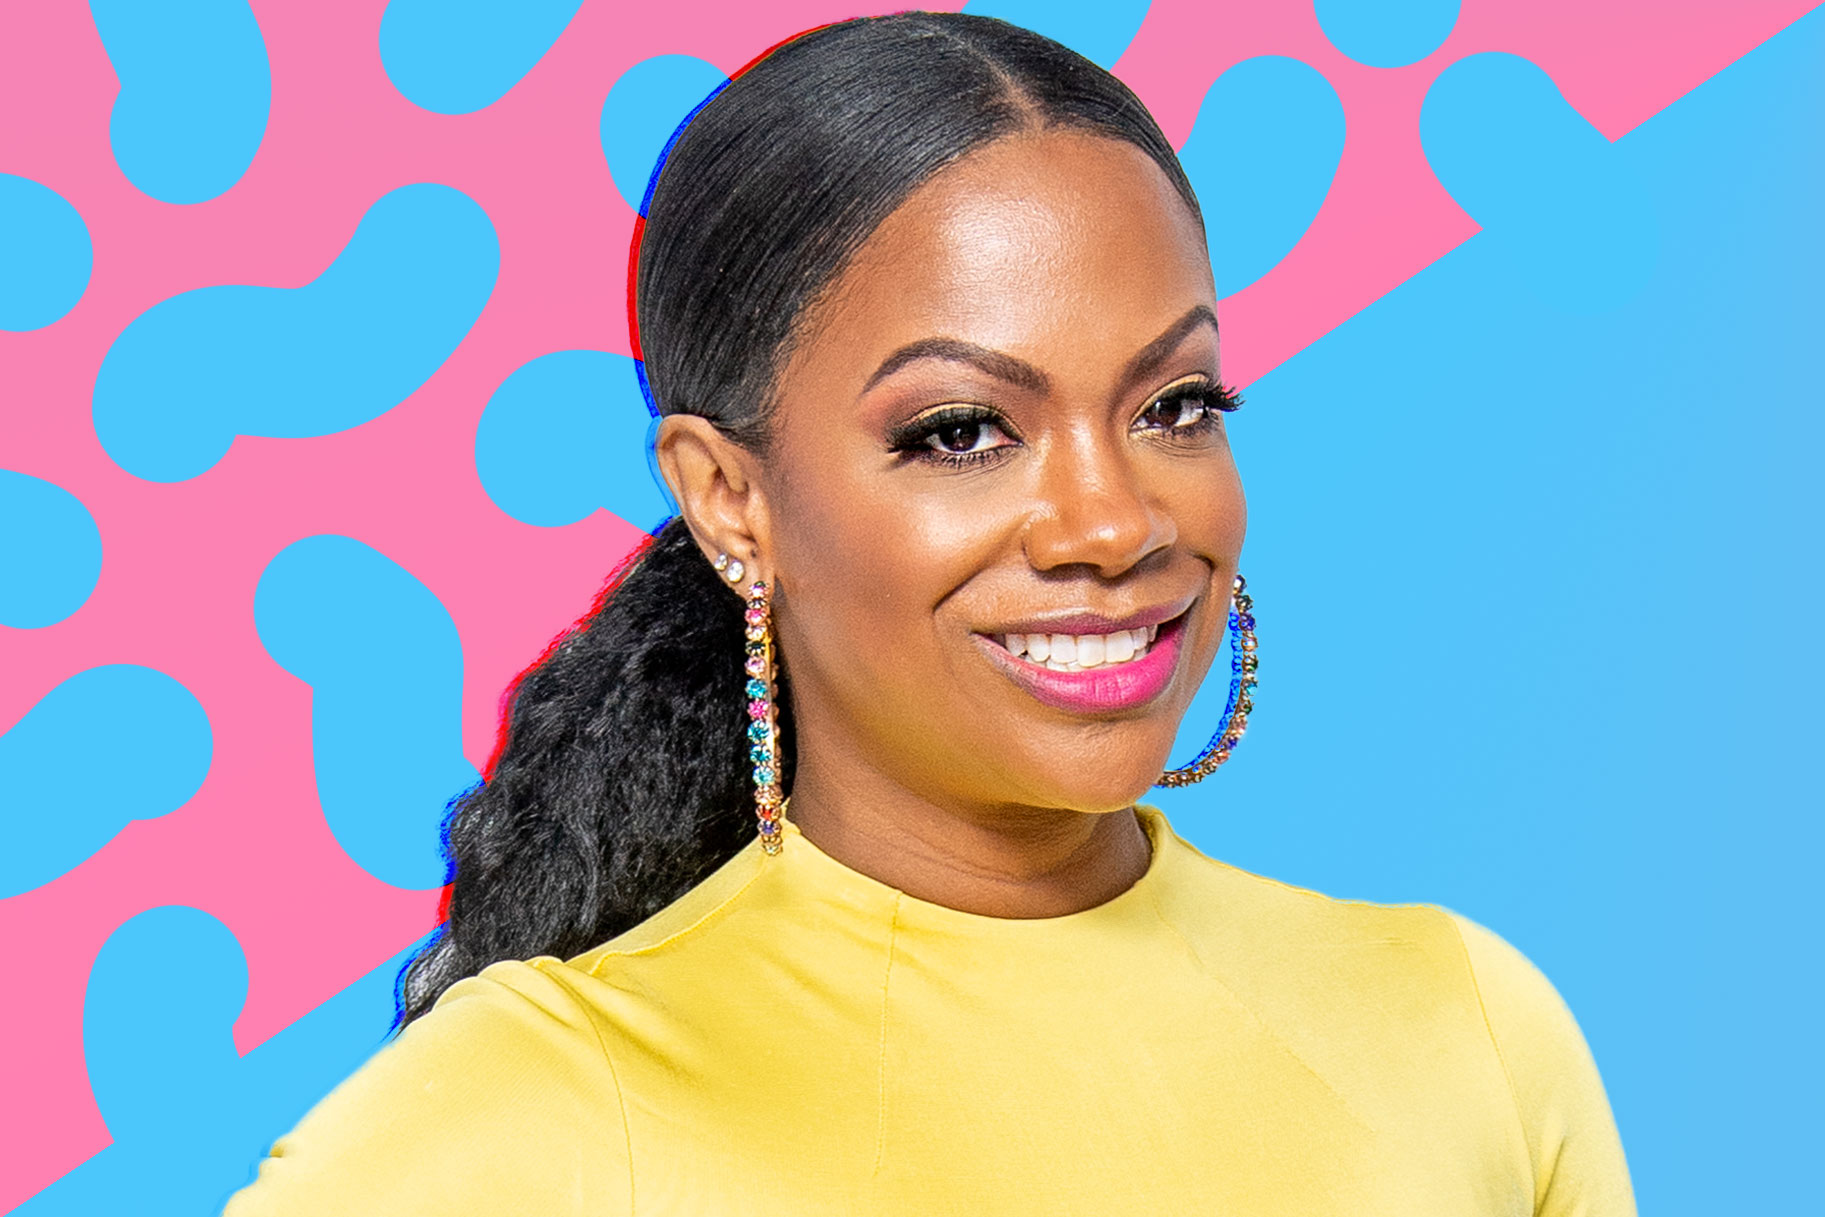 Kandi Burruss Flaunts The Luxurious Yacht Life She's Living With Todd Tucker In Thailand For Their 5th Anniversary